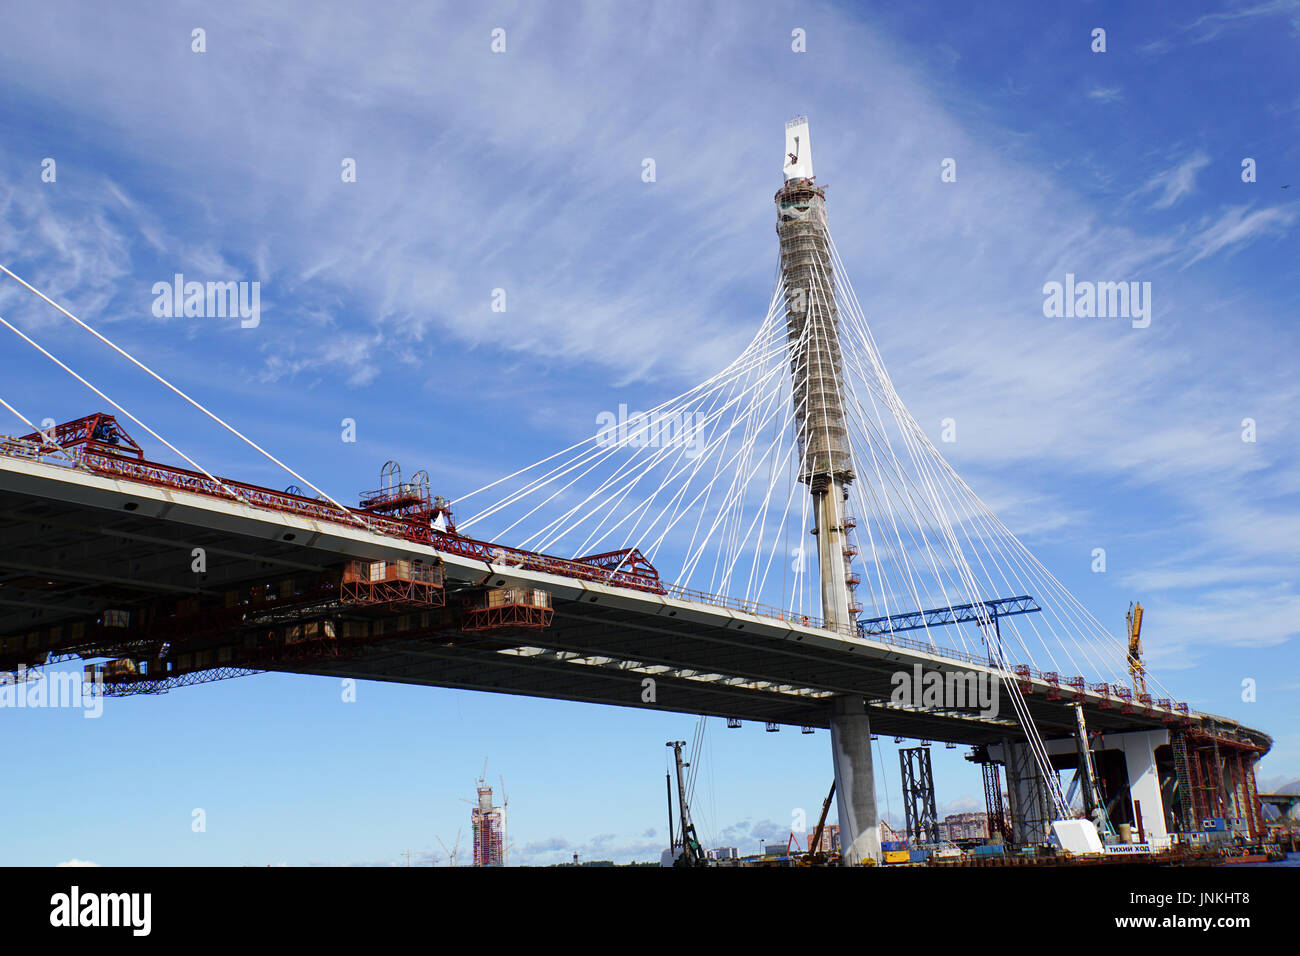 Construction of the new Bridge in St. Petersburg, Russia September 2016 - Stock Image